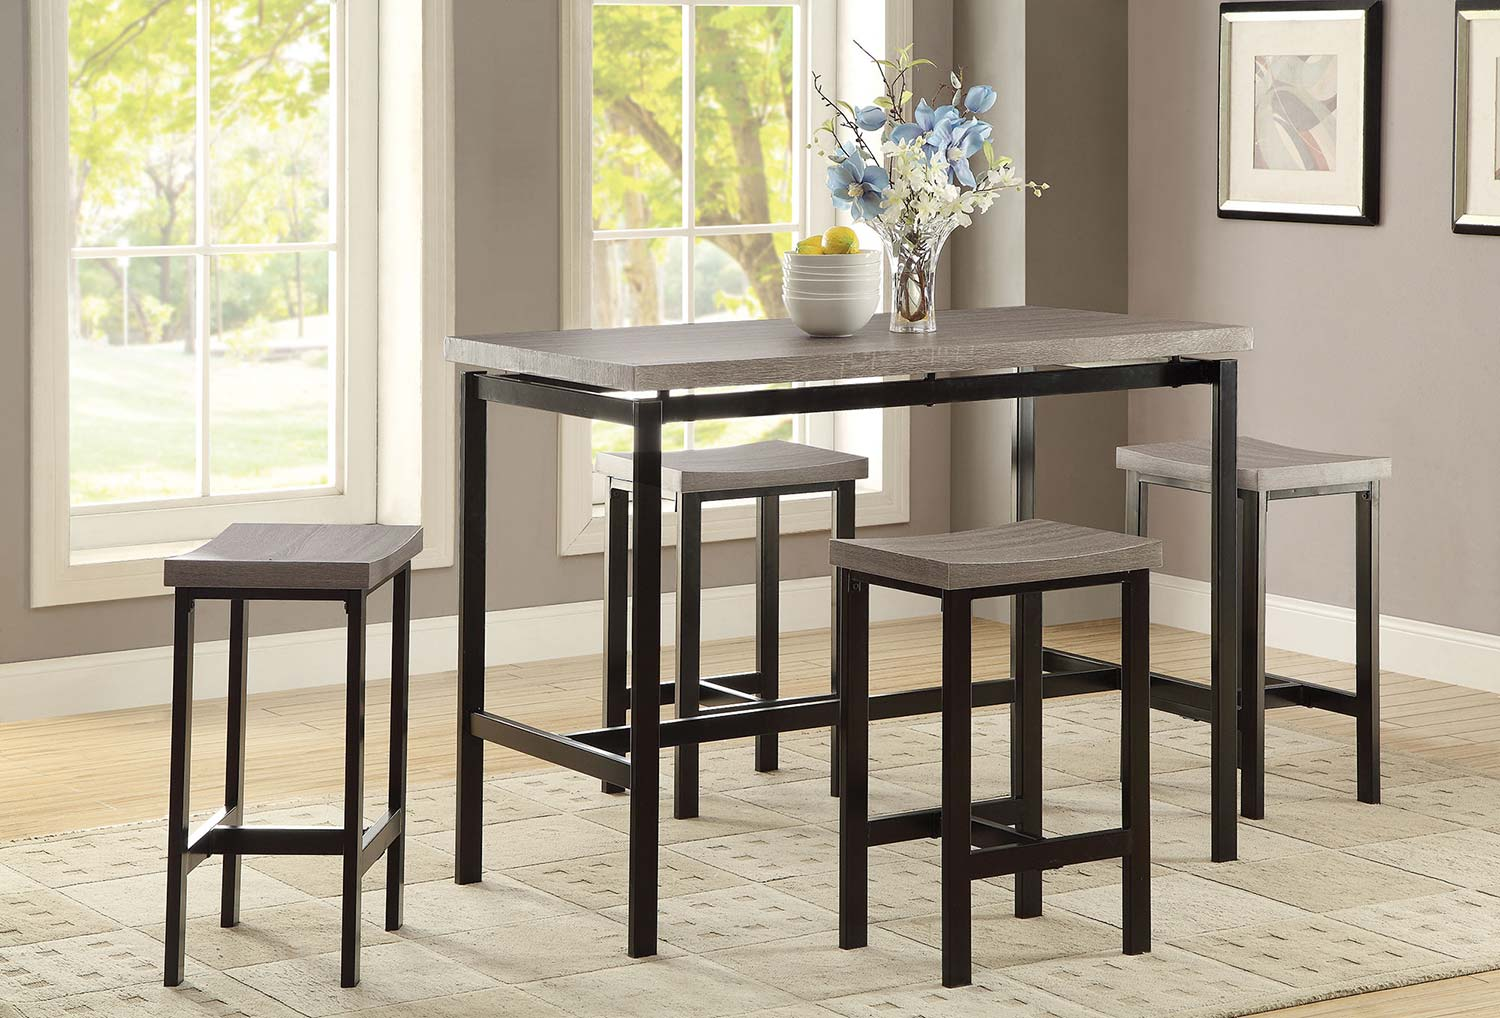 Coaster 150024 5 PC Counter Height Dining Set   Gunmetal